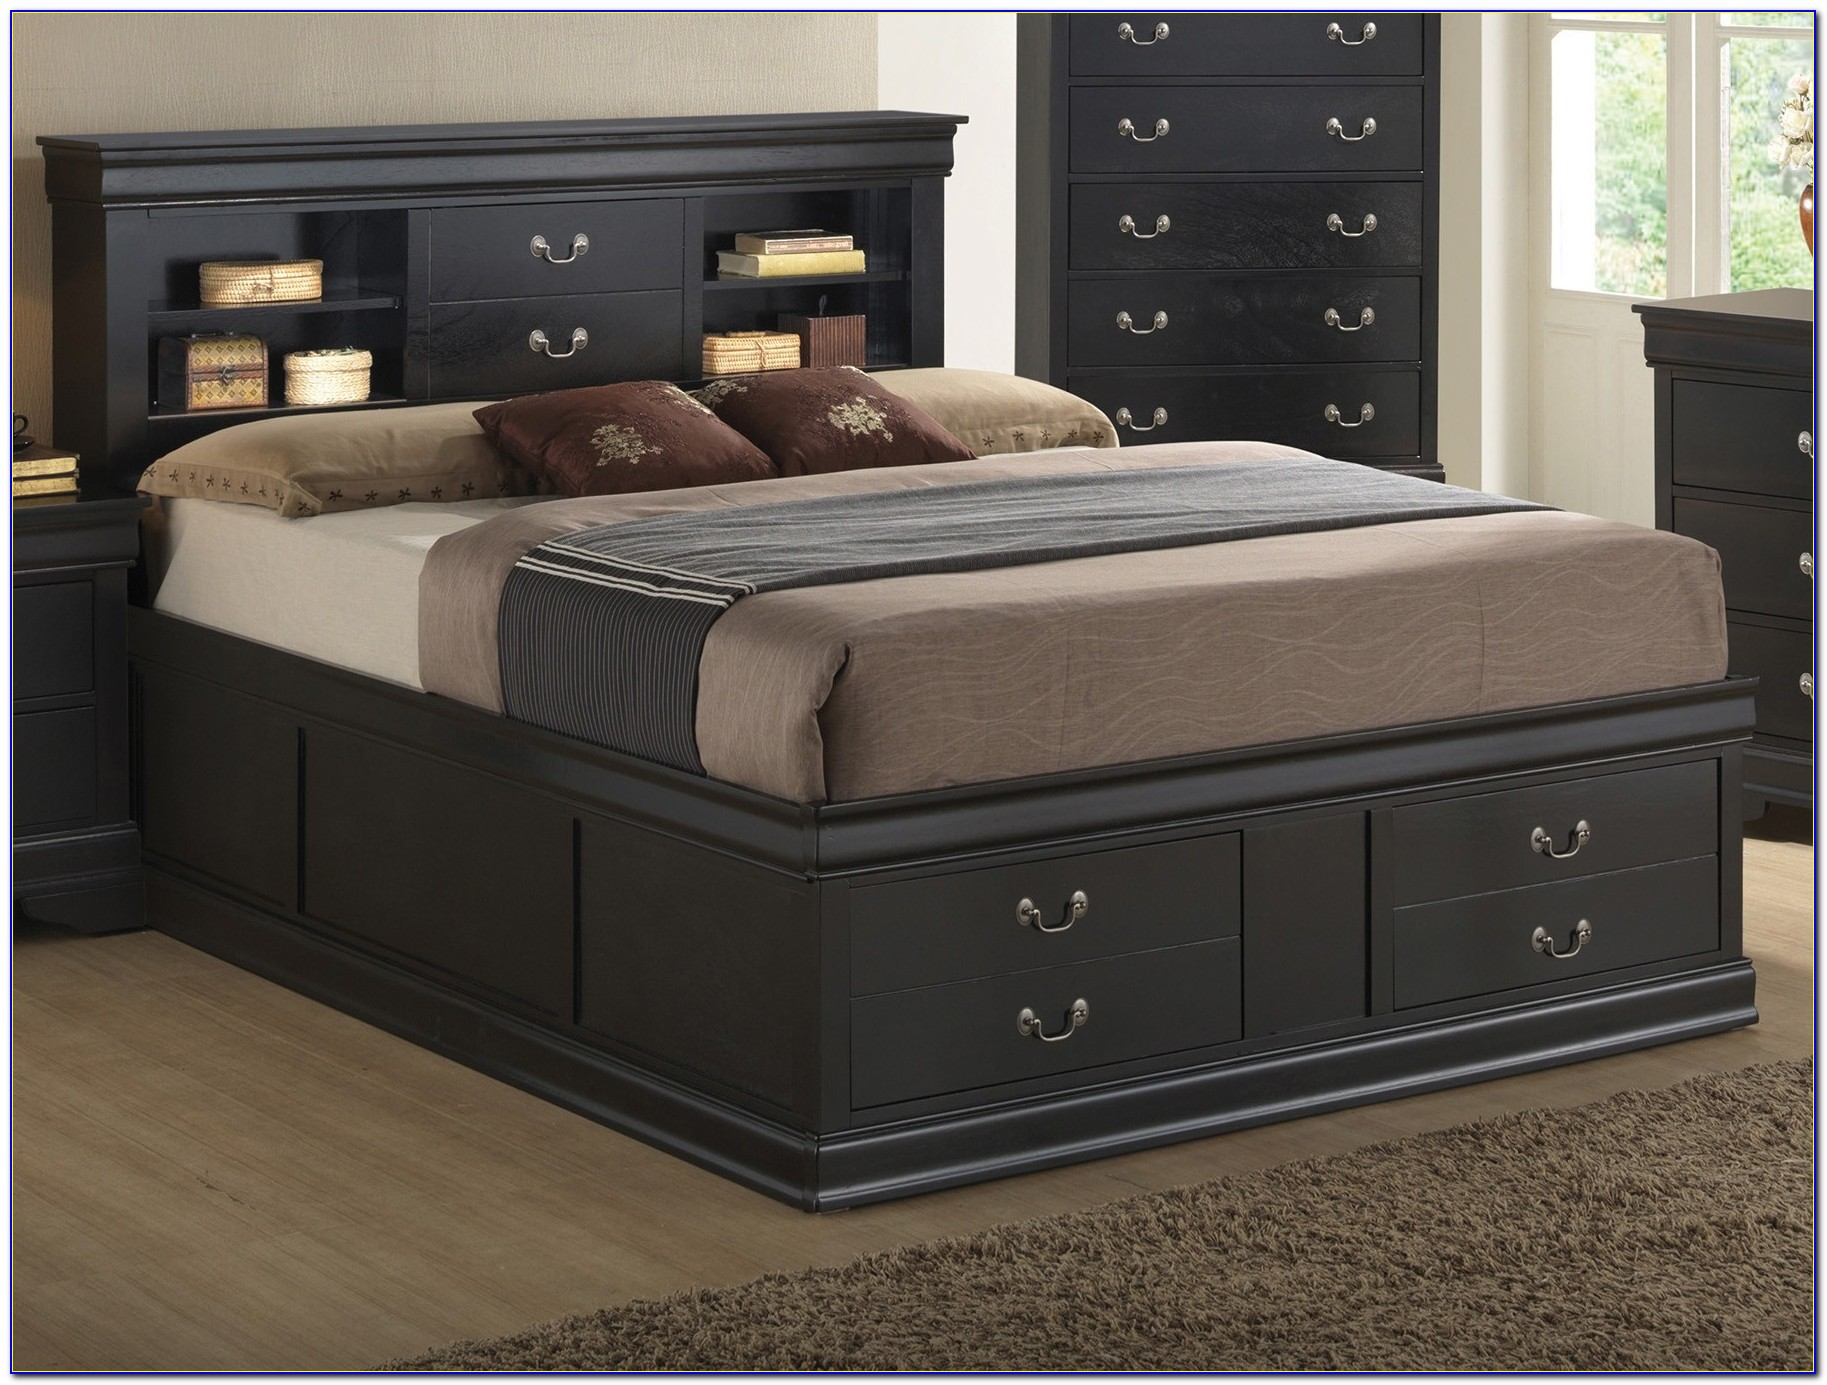 Queen Size Headboards With Storage